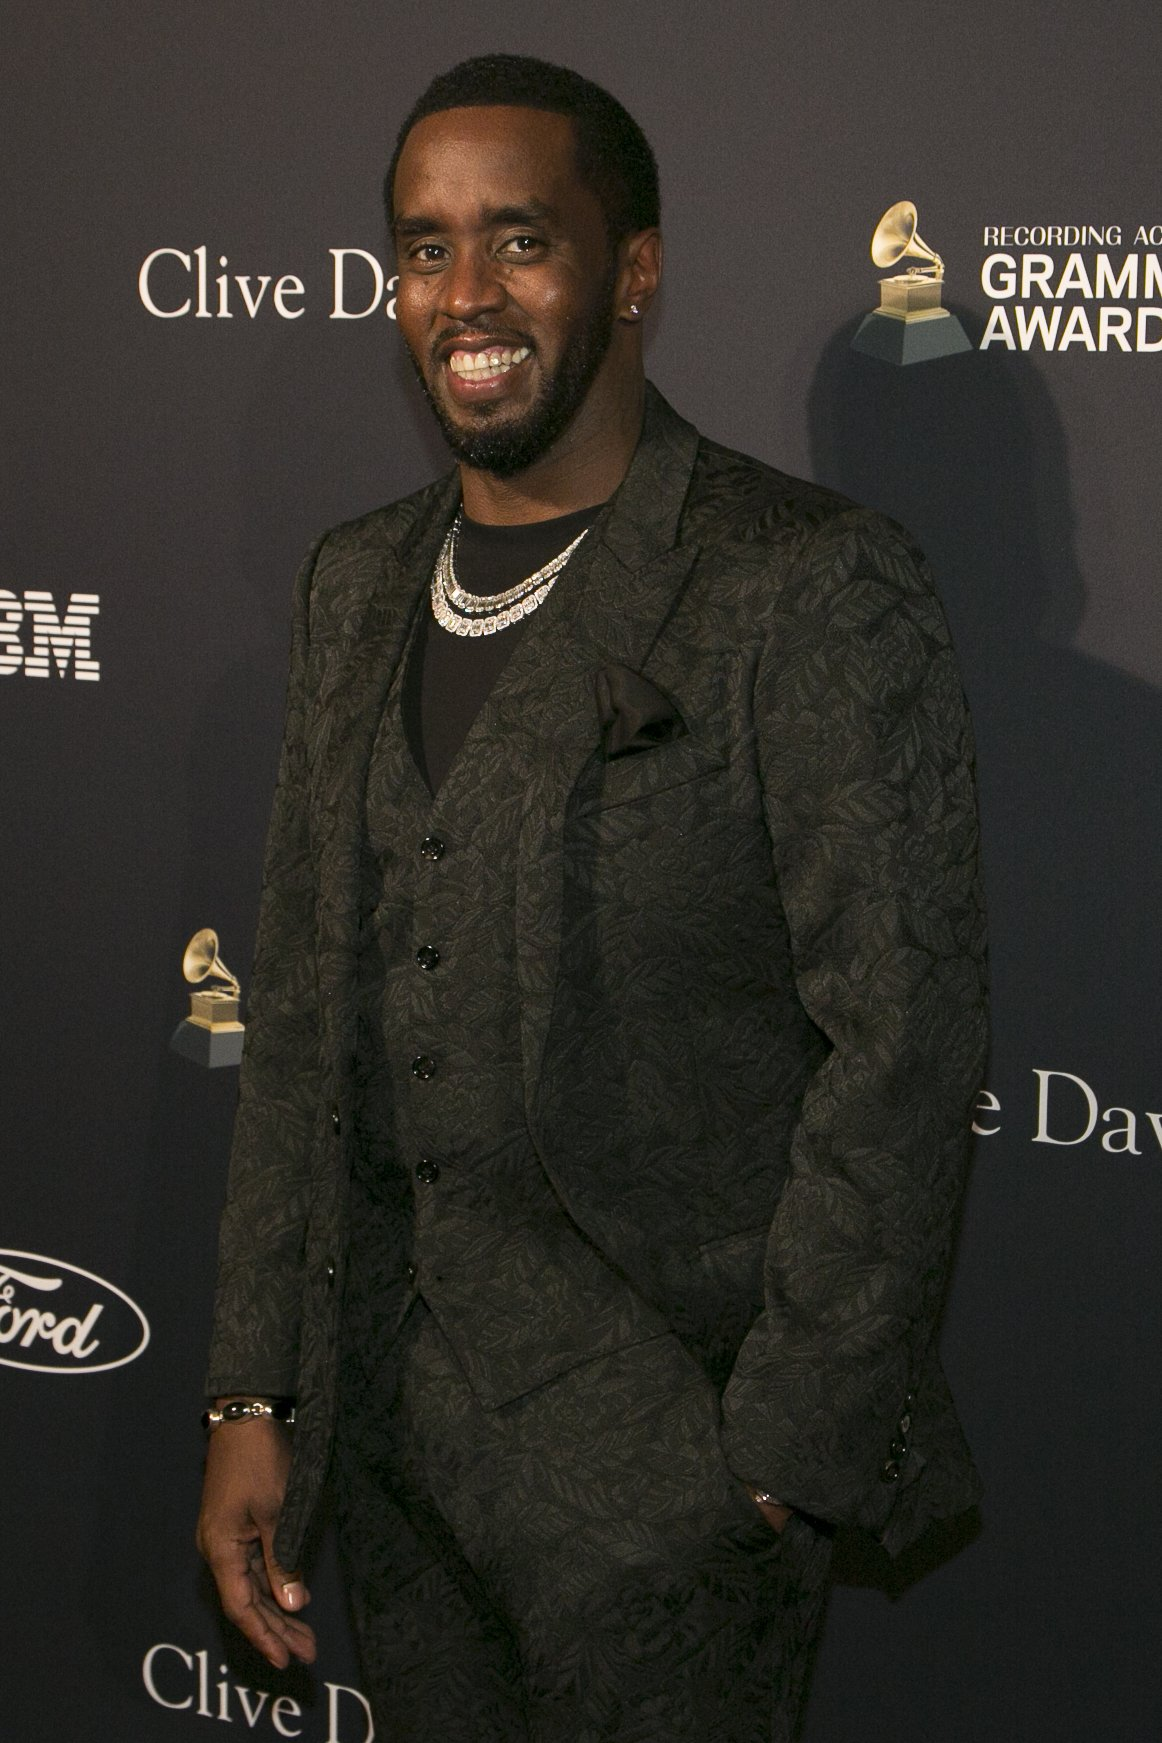 """Sean """"Diddy"""" Combs attends the Pre-Grammy Gala and Grammy Salute to Industry Icons Honoring Sean """"Diddy"""" Combs at The Beverly Hilton Hotel on January 25, 2020 in Beverly Hills, California 